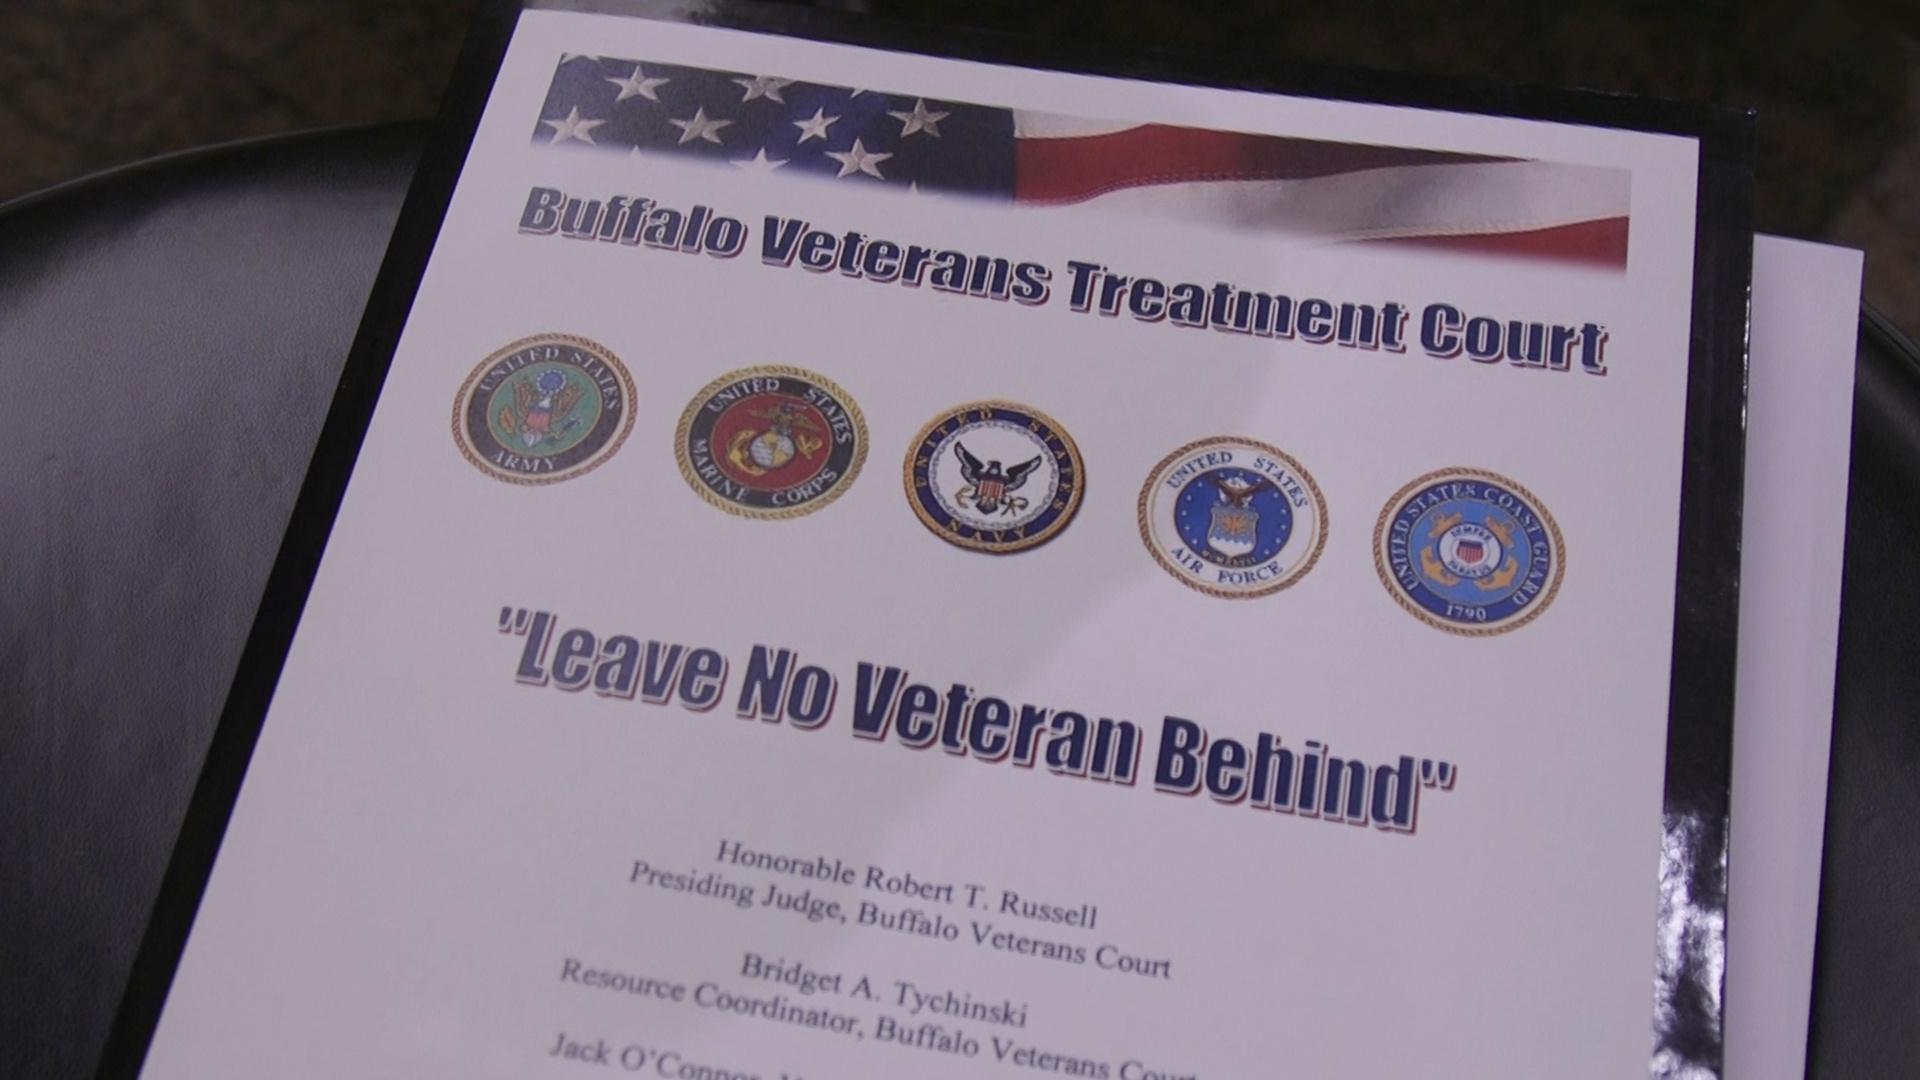 Veterans Treatment Court